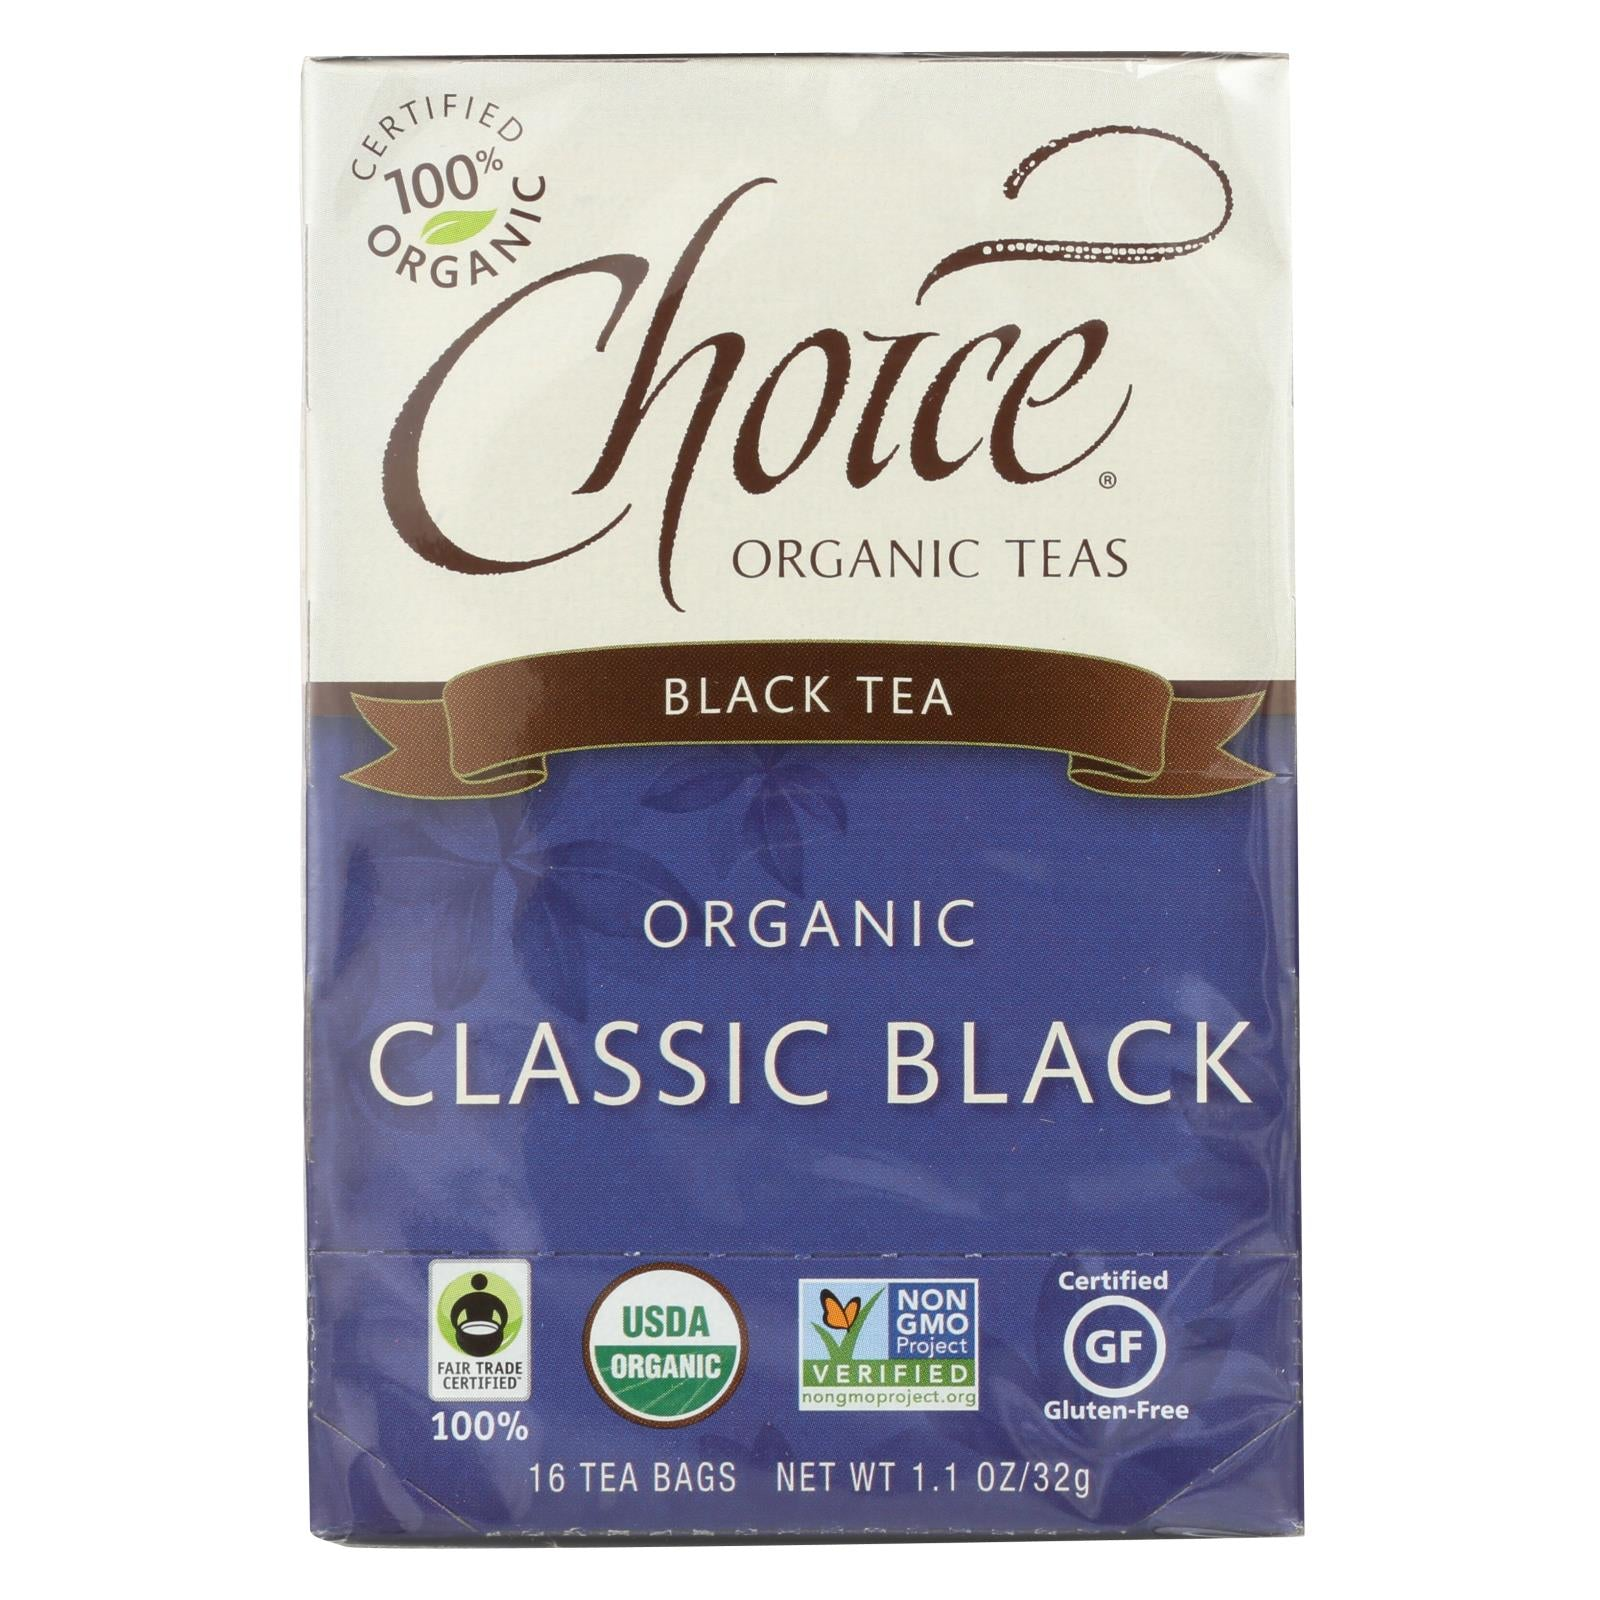 Buy Choice Organic Teas Black Tea - 16 Tea Bags - Case of 6 - Black Tea from Veroeco.com